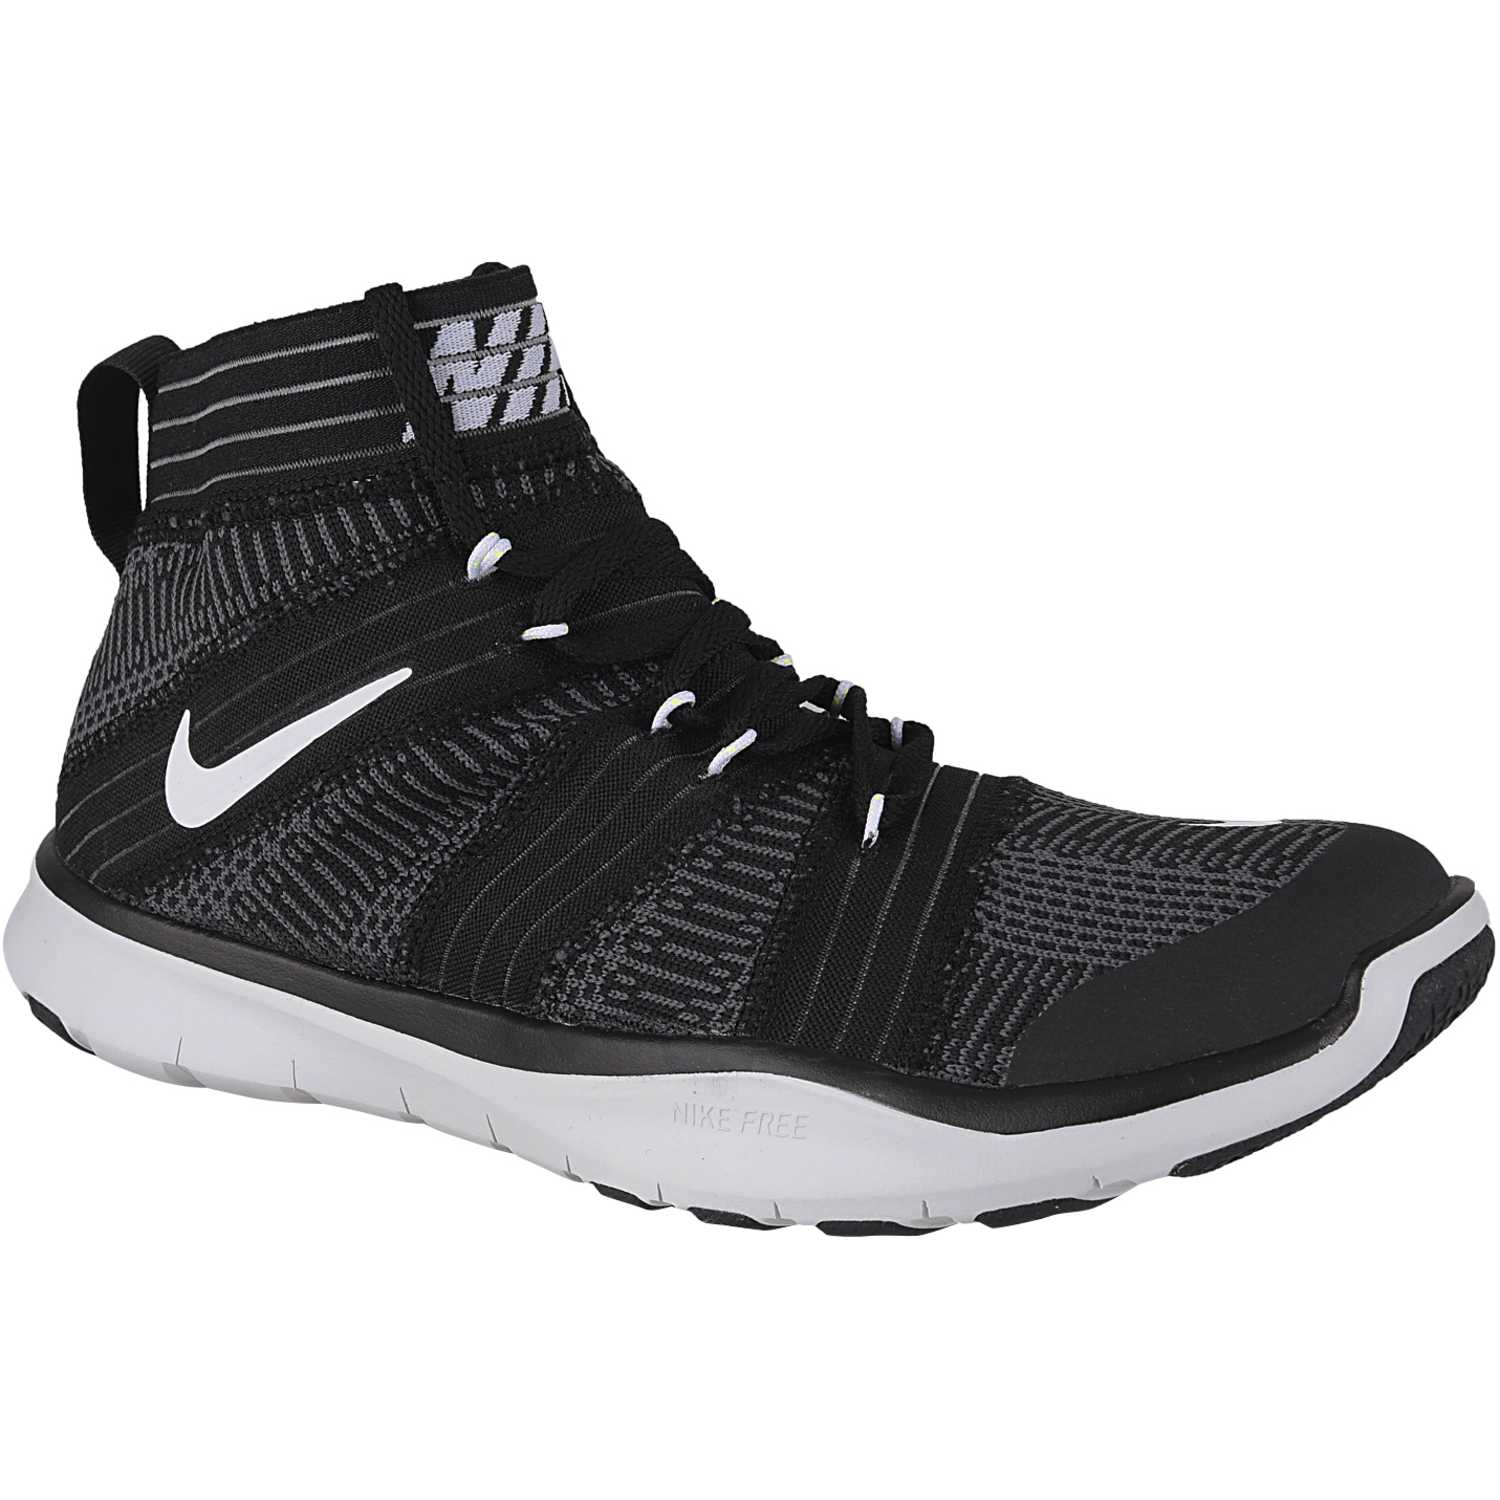 low priced 49d91 b2e38 Zapatilla de Hombre Nike Negro   blanco free train virtue